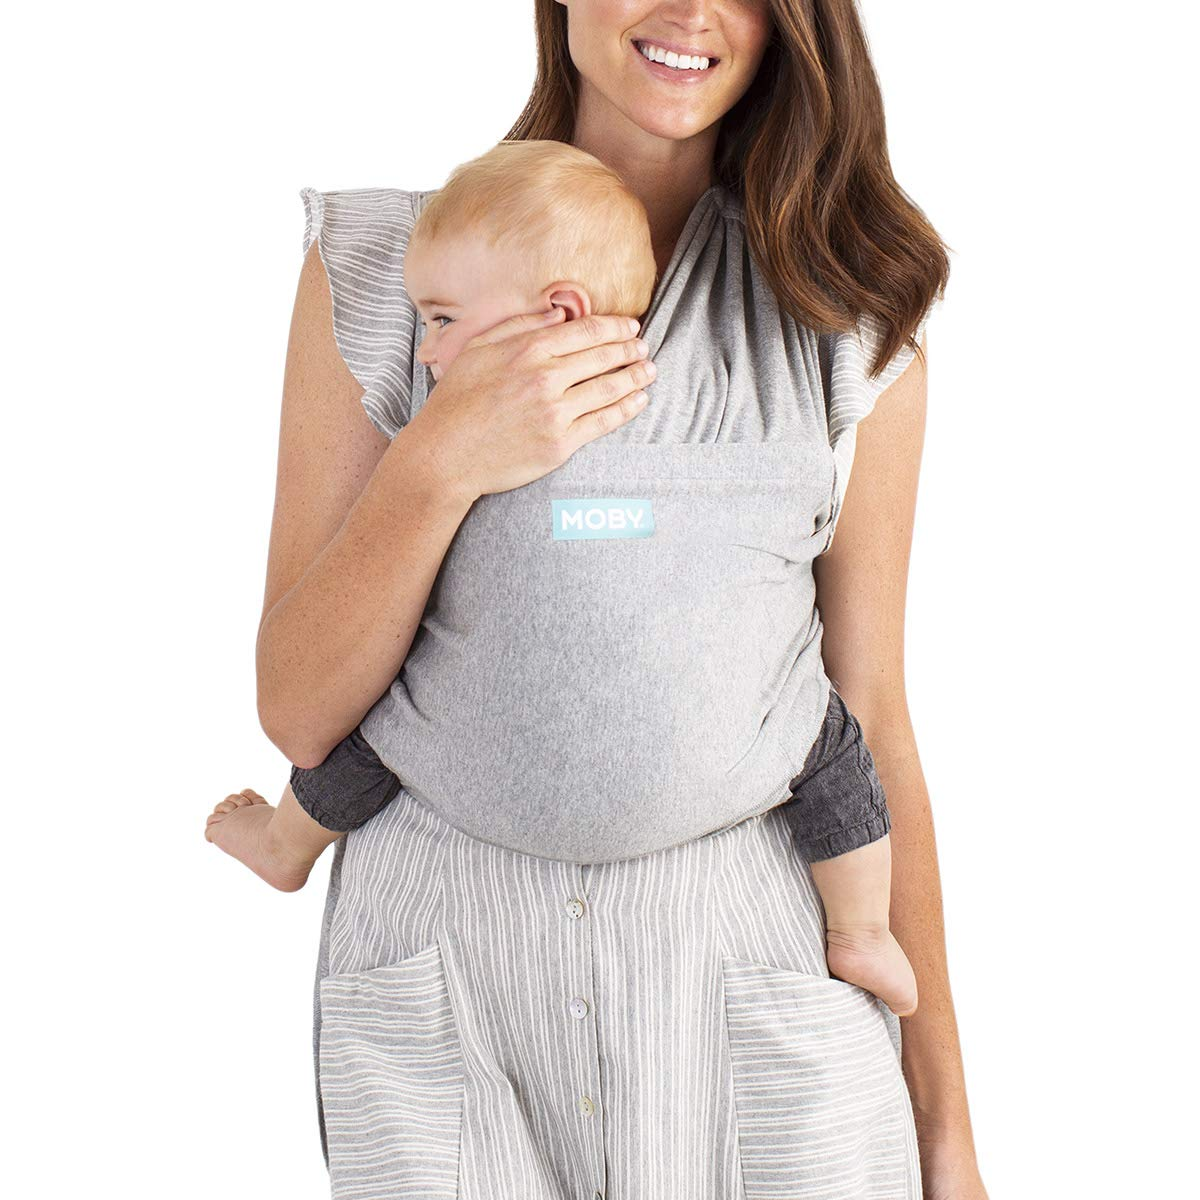 Moby Fit Baby Carrier Wrap Grey – Designed To Combine The Best Features Of A Baby Wrap and Baby Carrier In One – The Perfect Child Carrier – Great For Babywearing, Nursing, And Keeping Baby Close